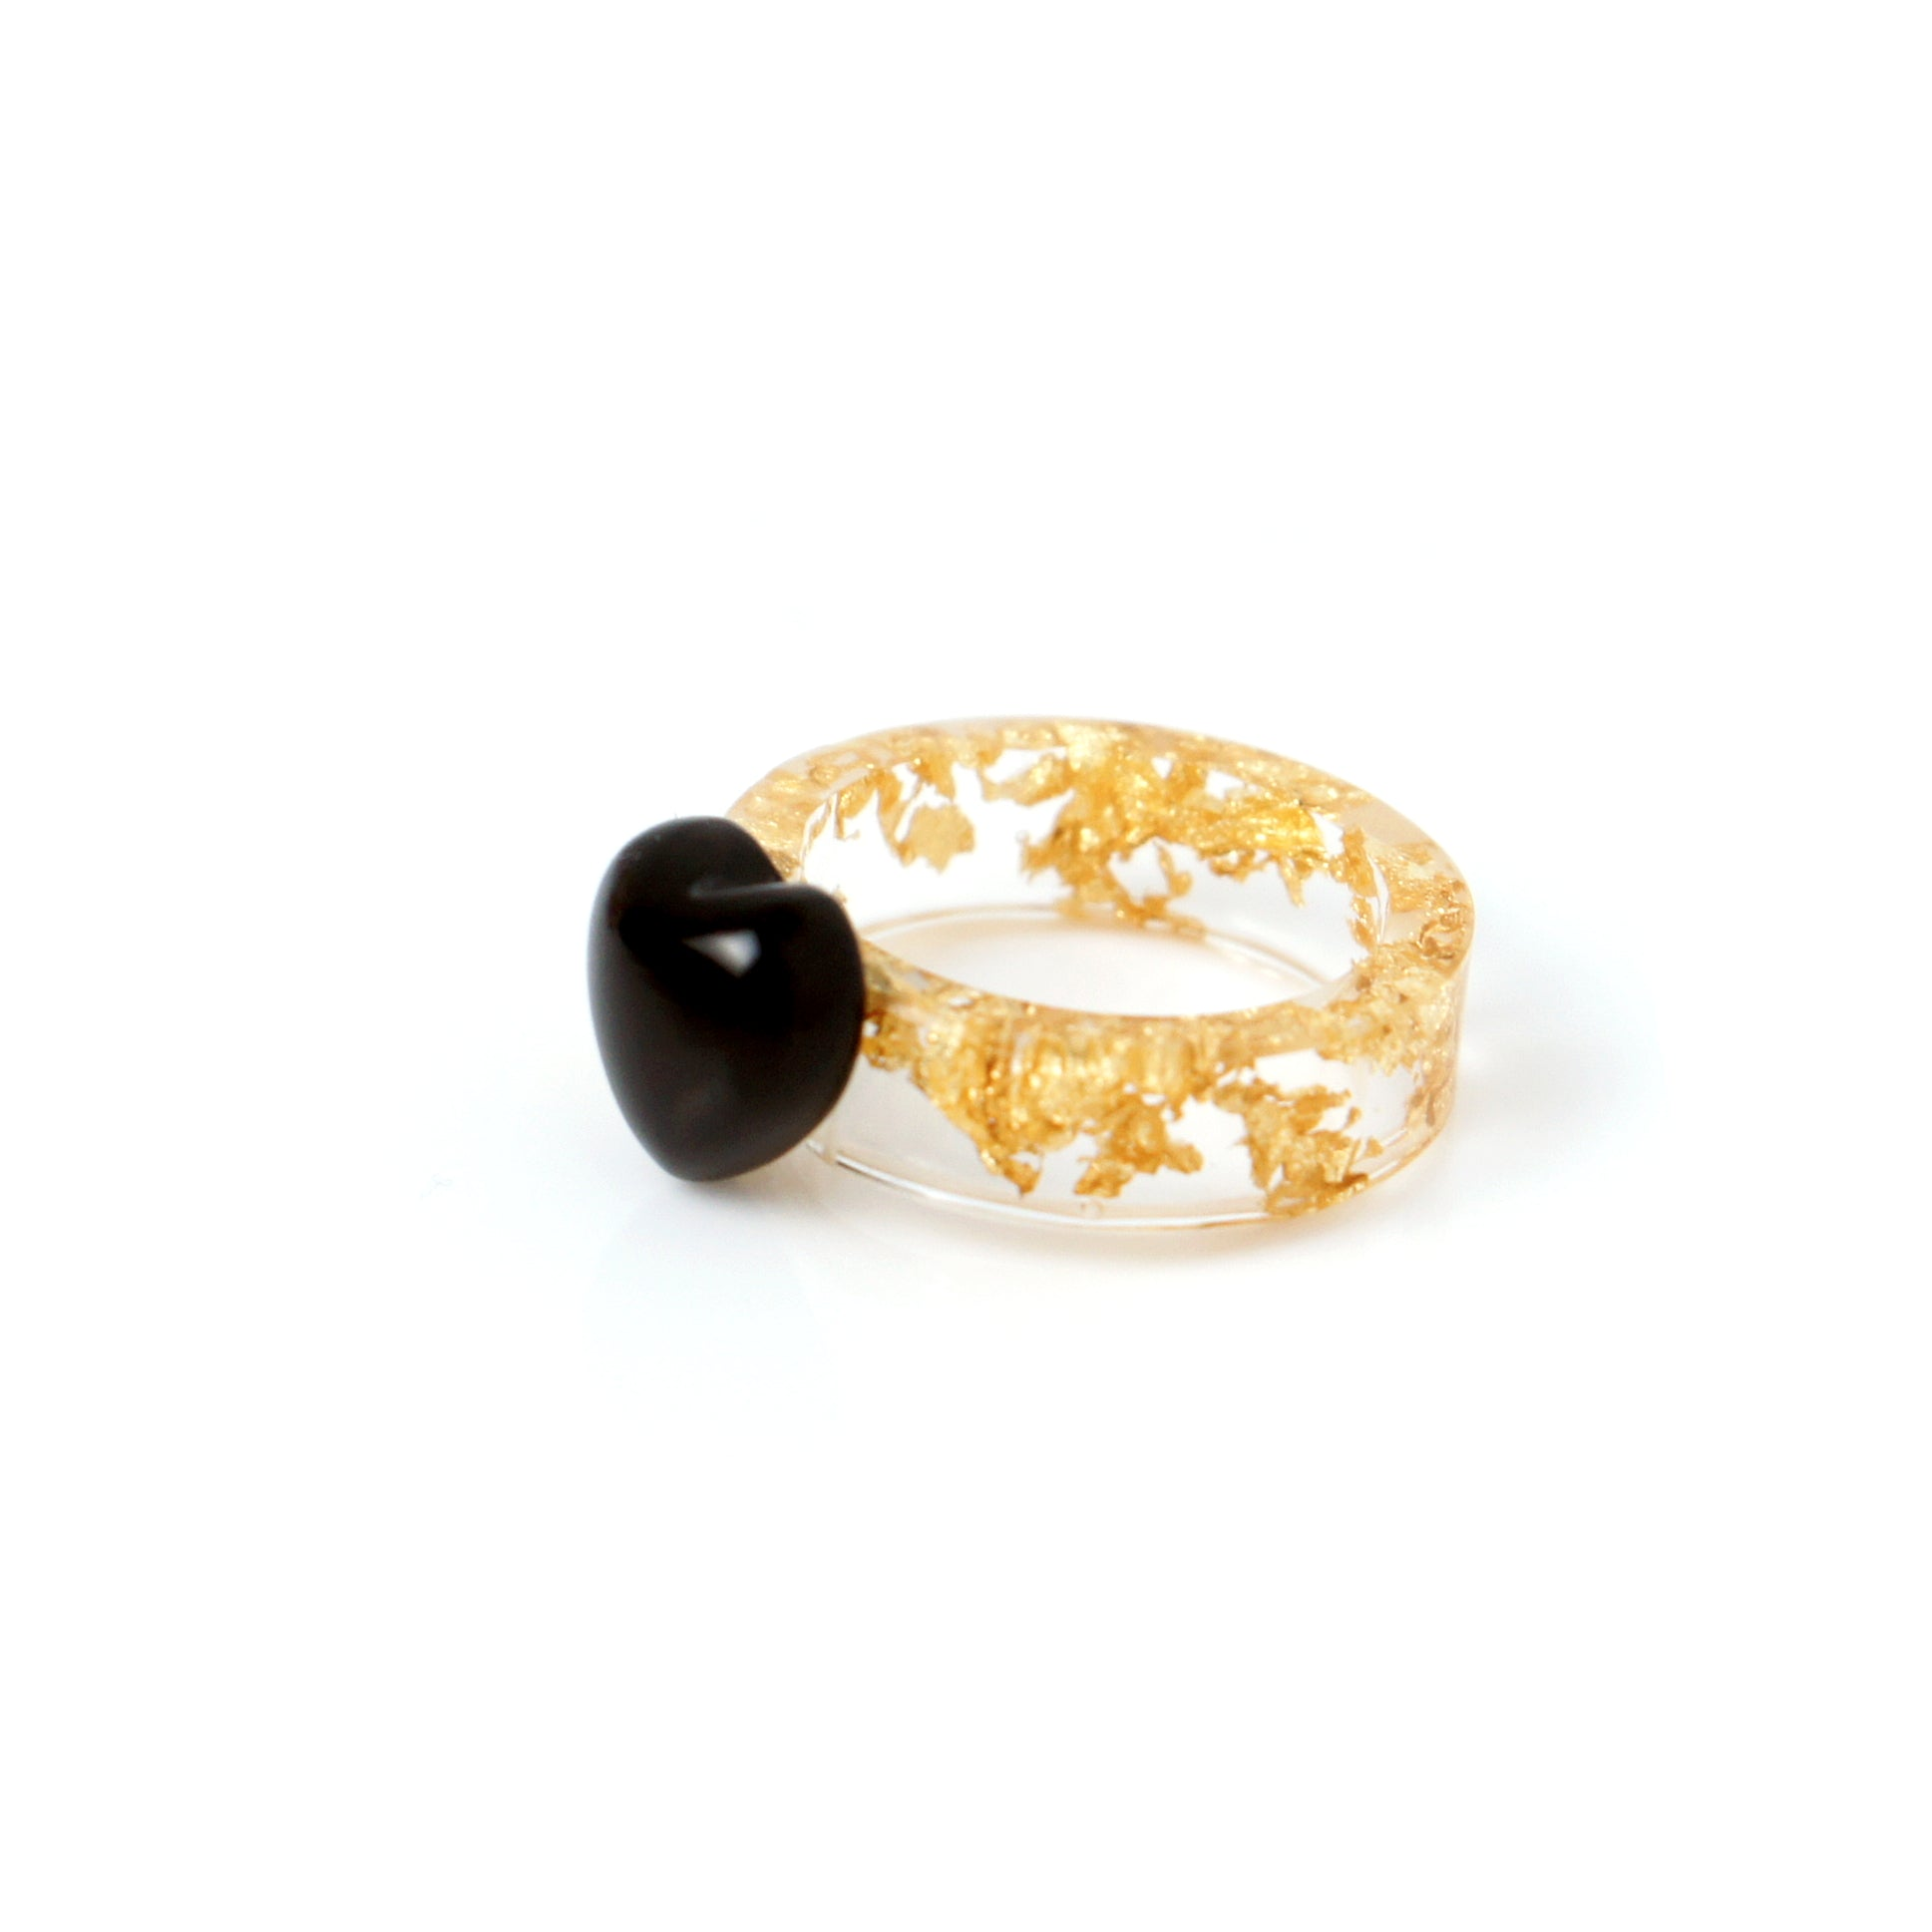 Kind-hearted Gemstone Ring w/Resin Band